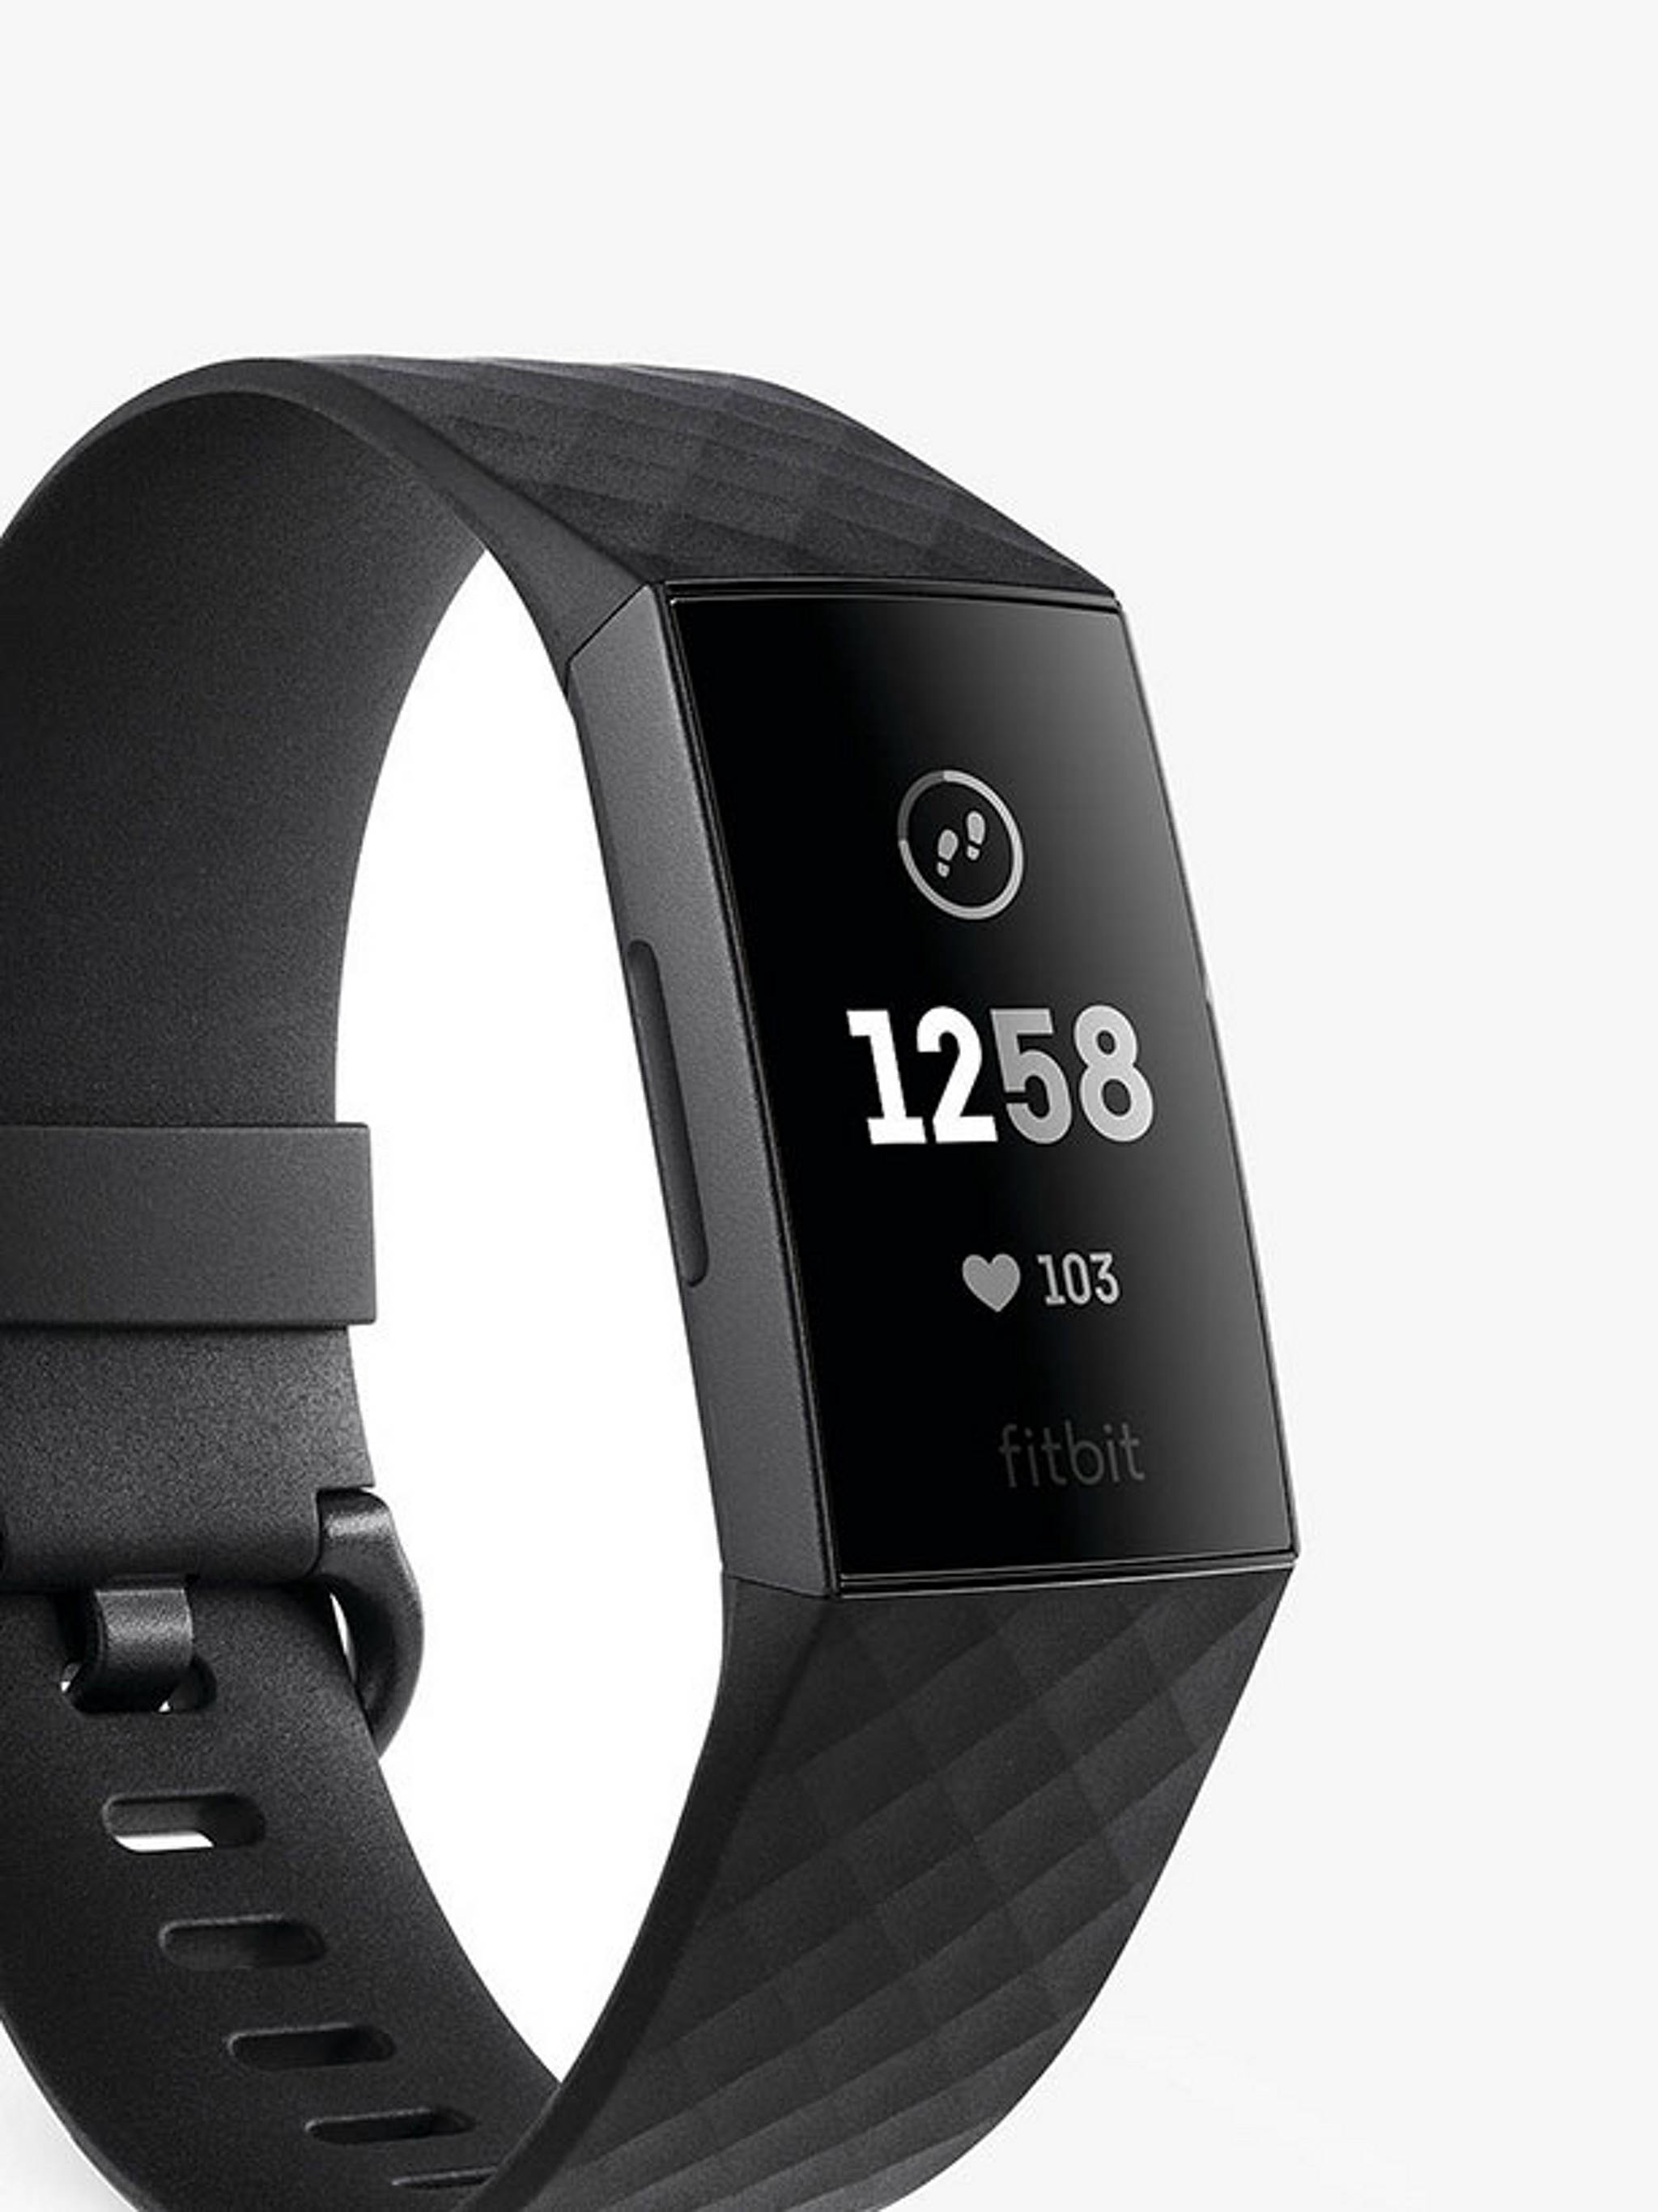 Smartwatch & Fitness Trackers